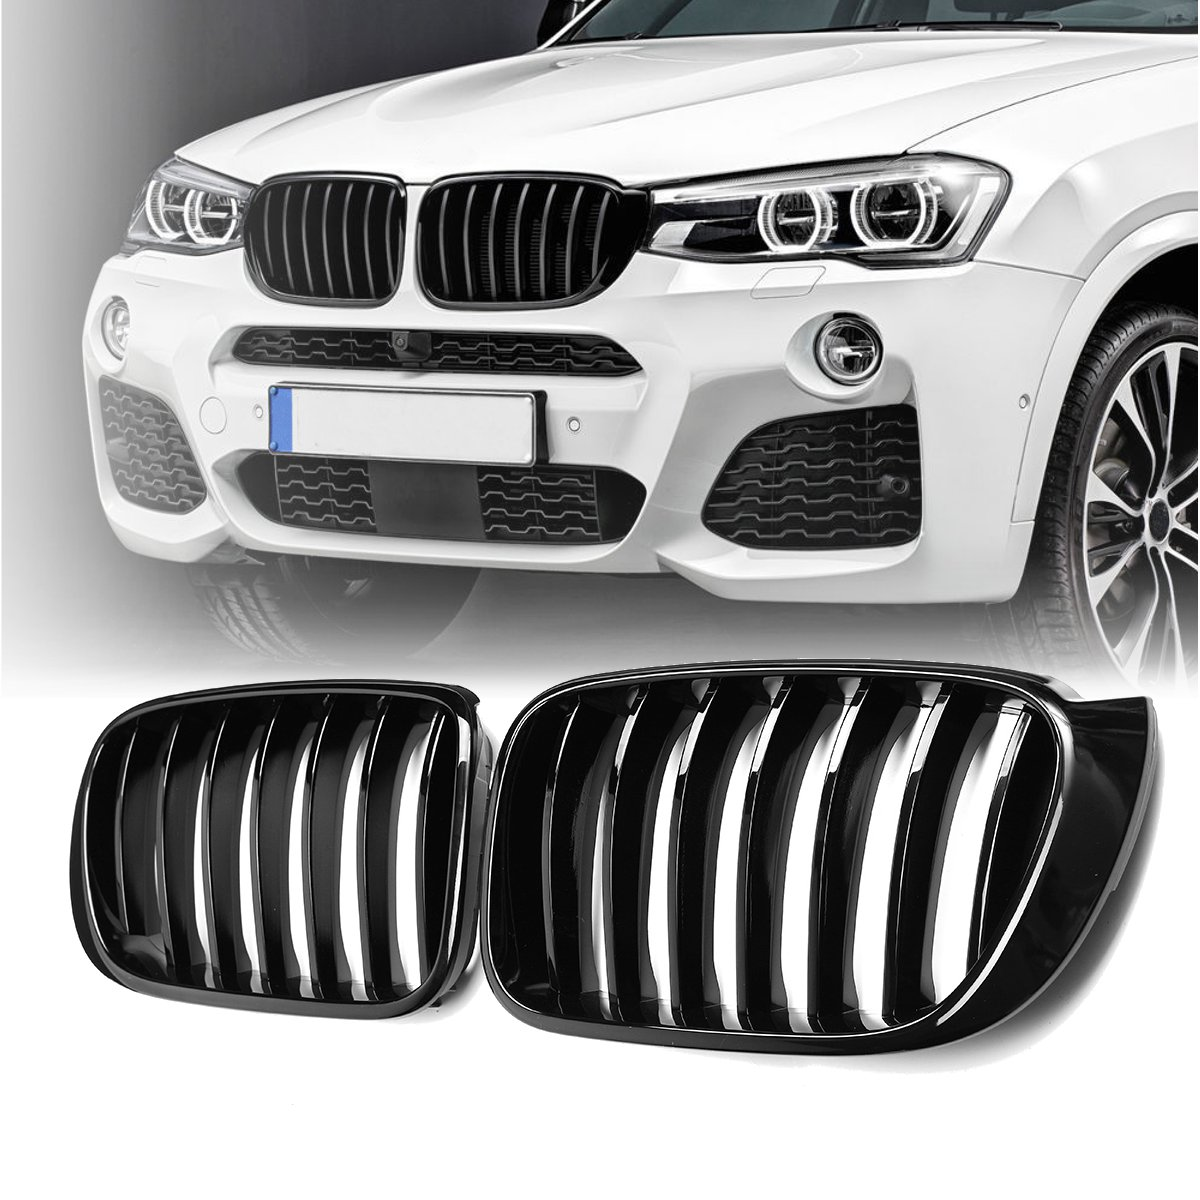 Gloss Matt Black Front Bumper Kidney Grille Mesh For BMW X3 F25 X4 F26 2014 2015 2016 2017 1-Slat ABS Replacement Car Styling